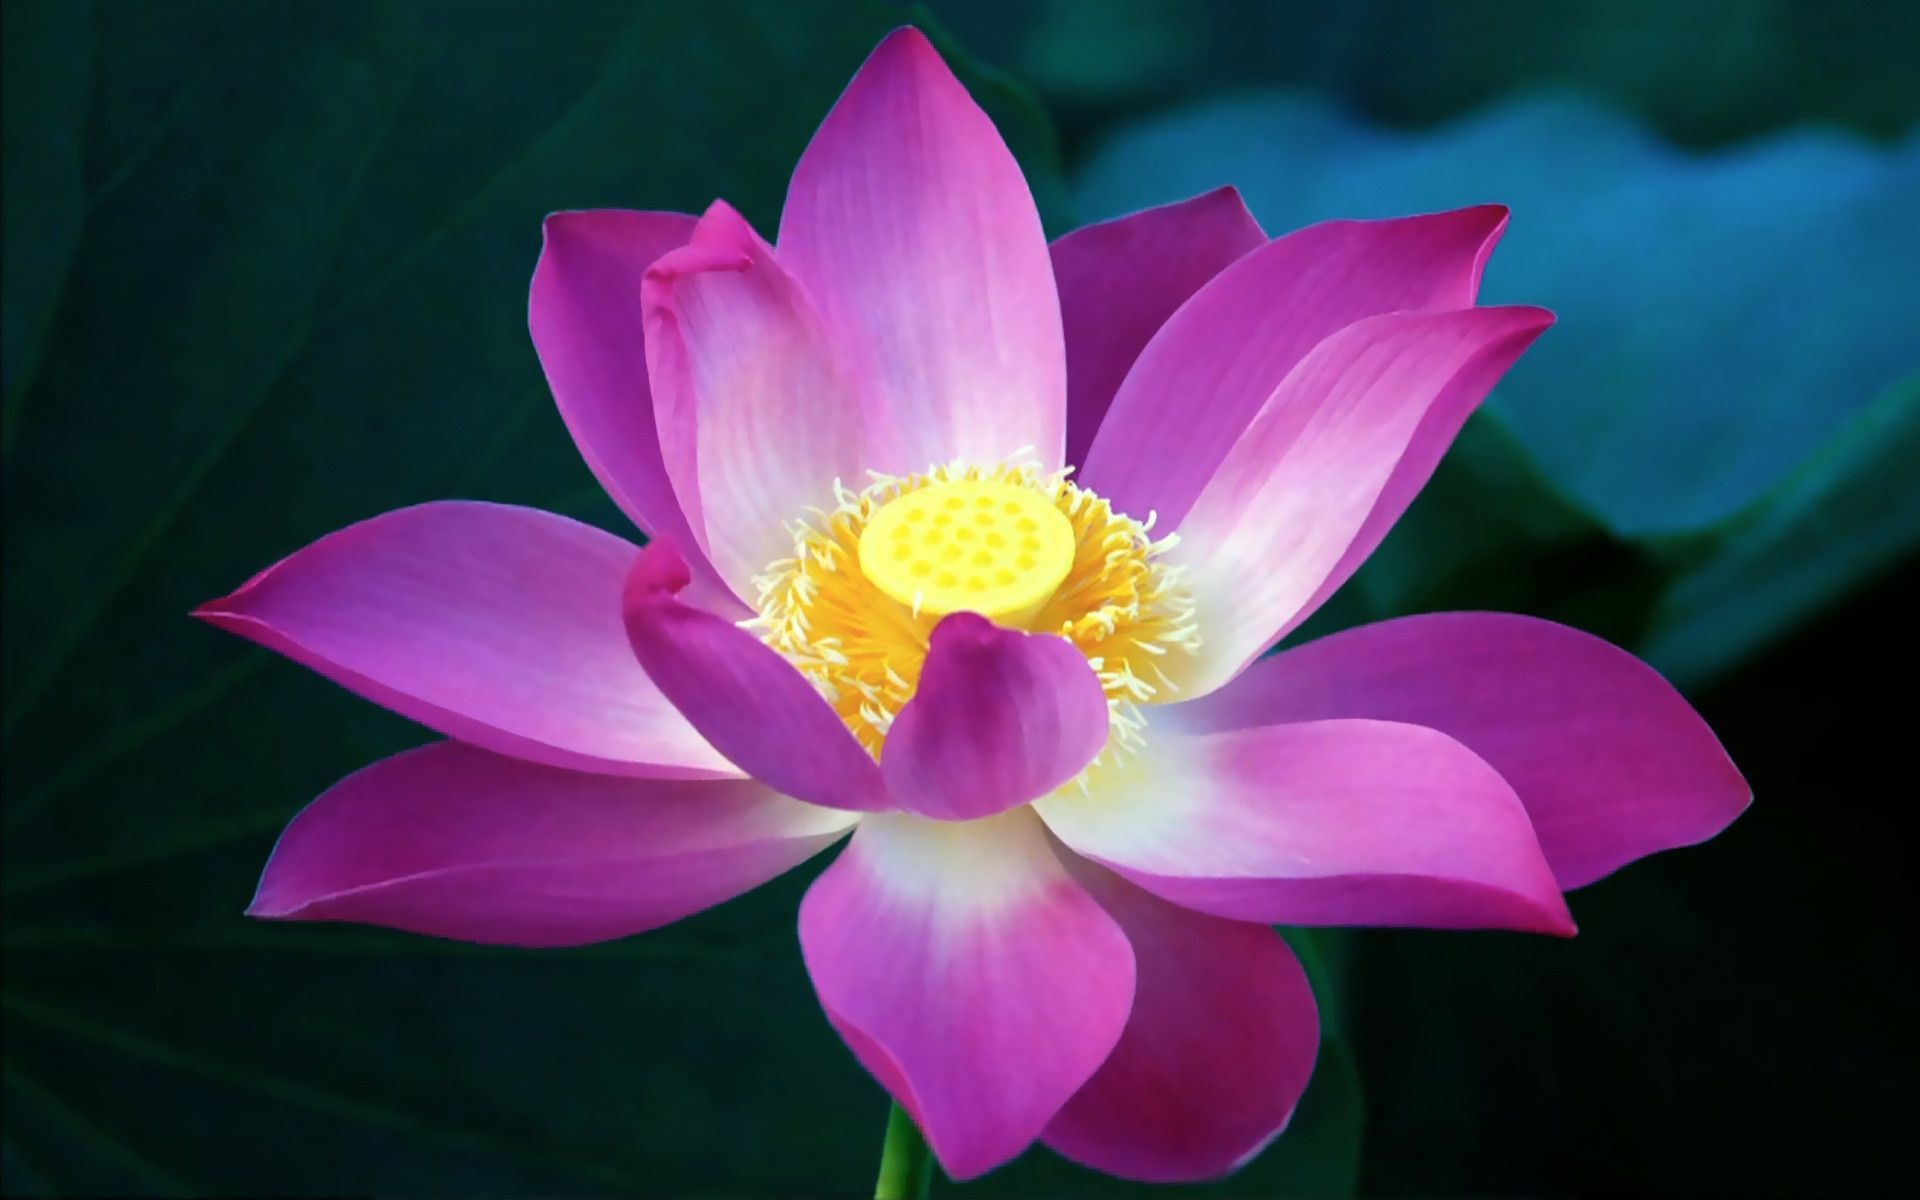 Purple lotus flower wallpapers high quality lotus pinterest purple lotus flower wallpapers high quality mightylinksfo